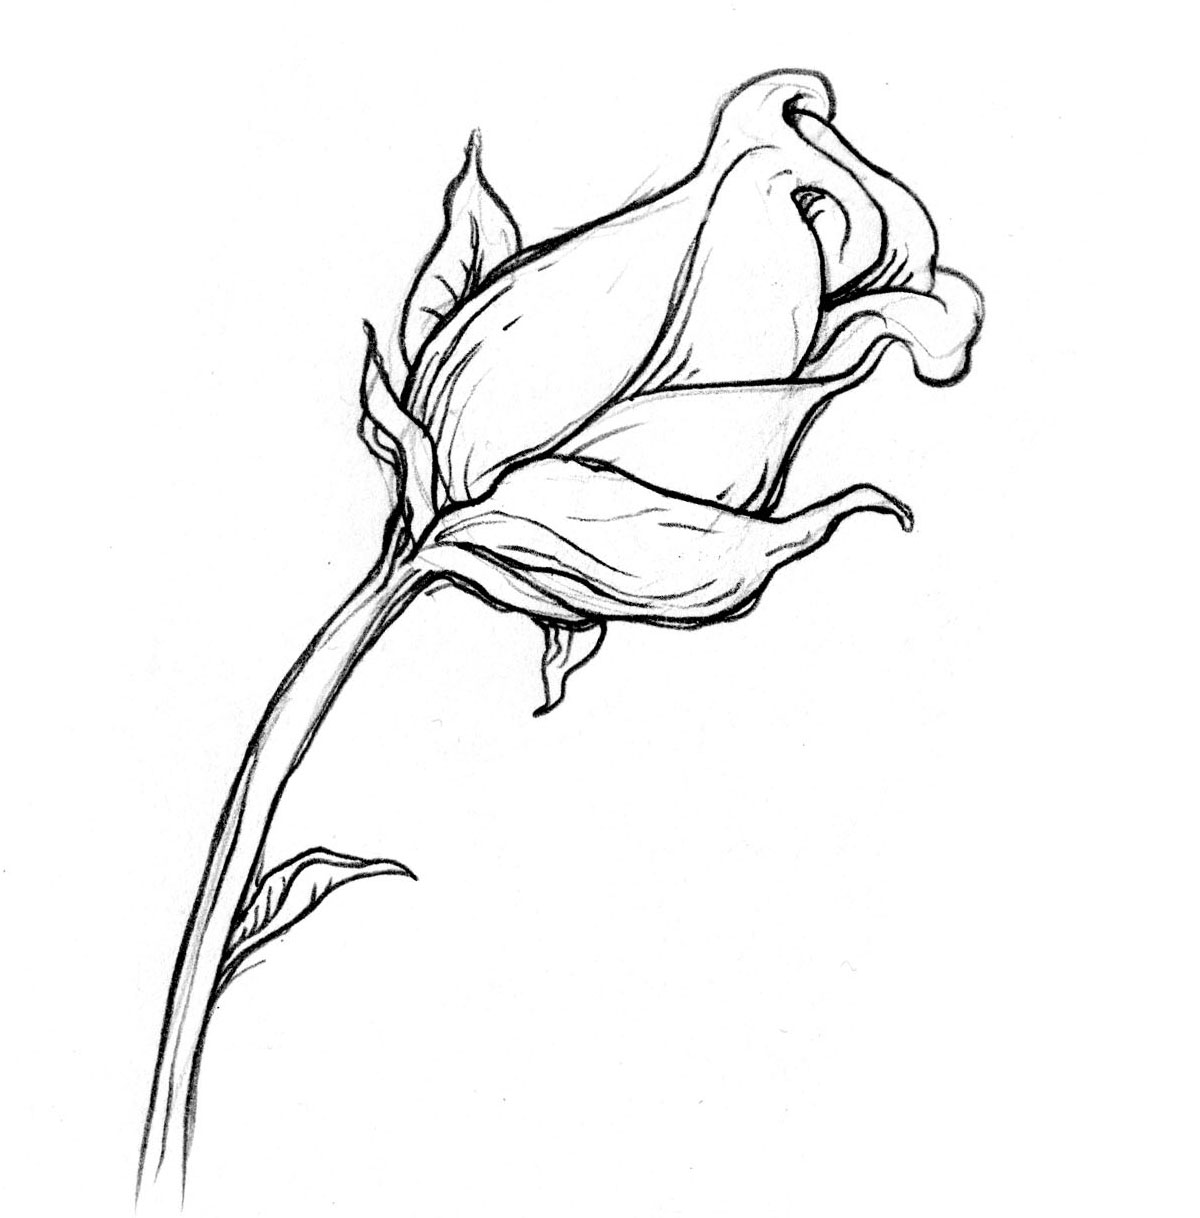 Drawn rose bush antique flower On Look you a looking